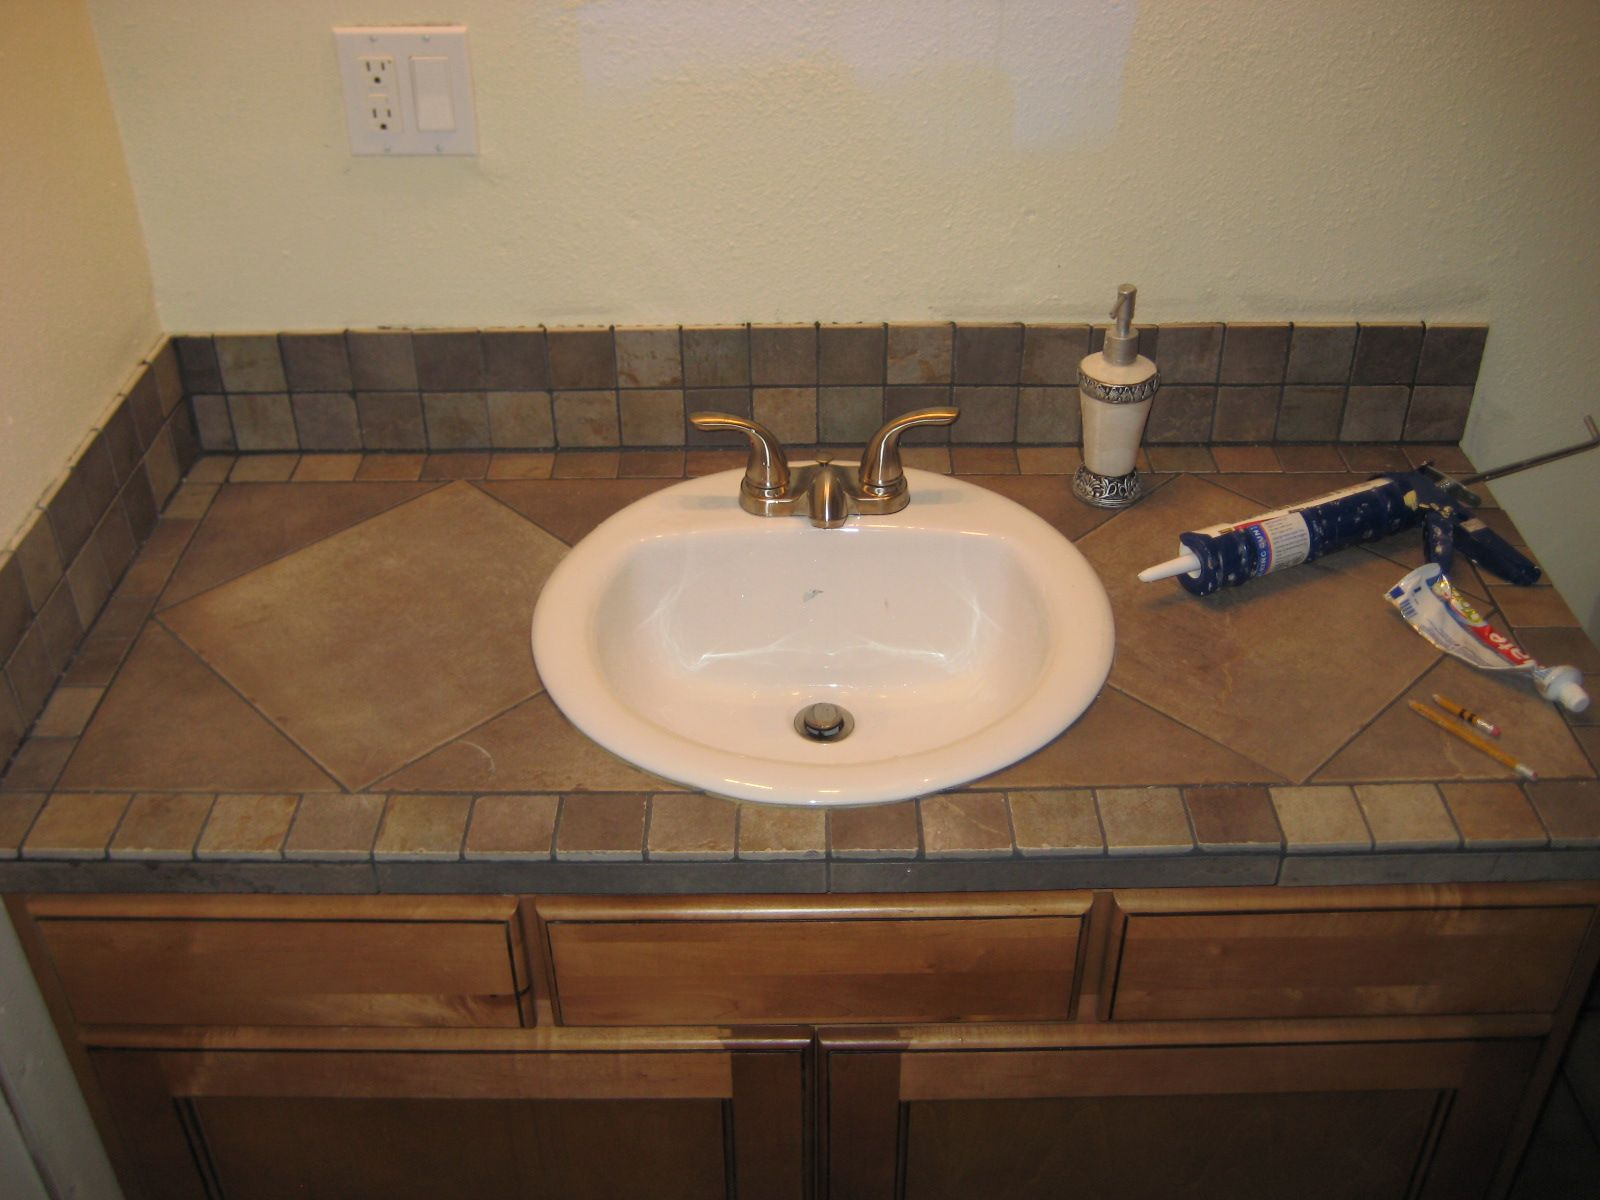 Latest Posts Under Bathroom Tile Ideascountertop